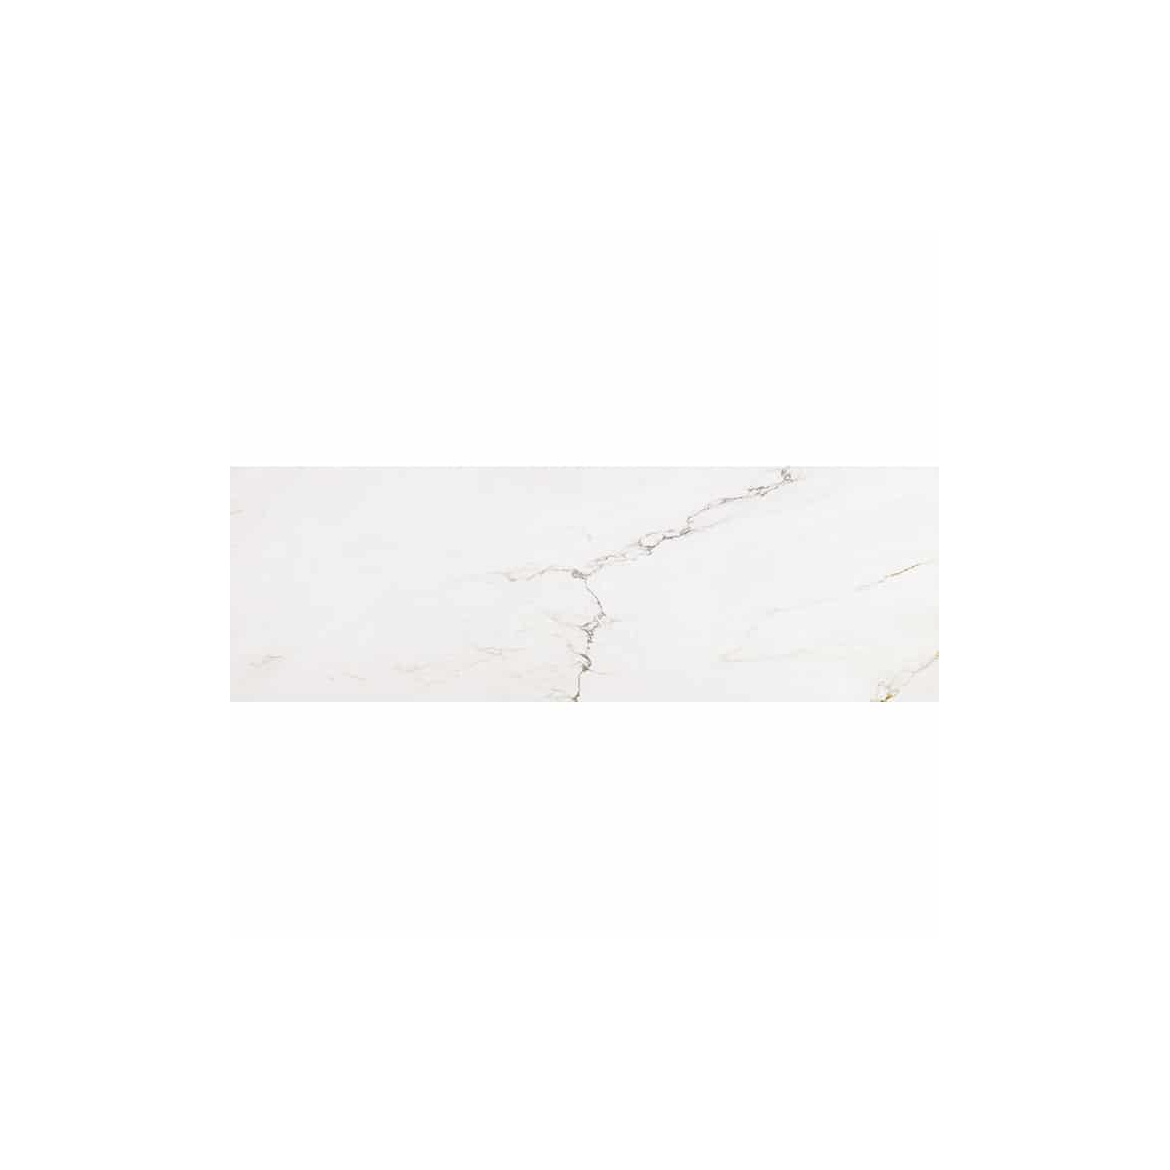 https://cerdesign.pl/2112-large_default/plytki-venis-bianco-carrara-45x120.jpg